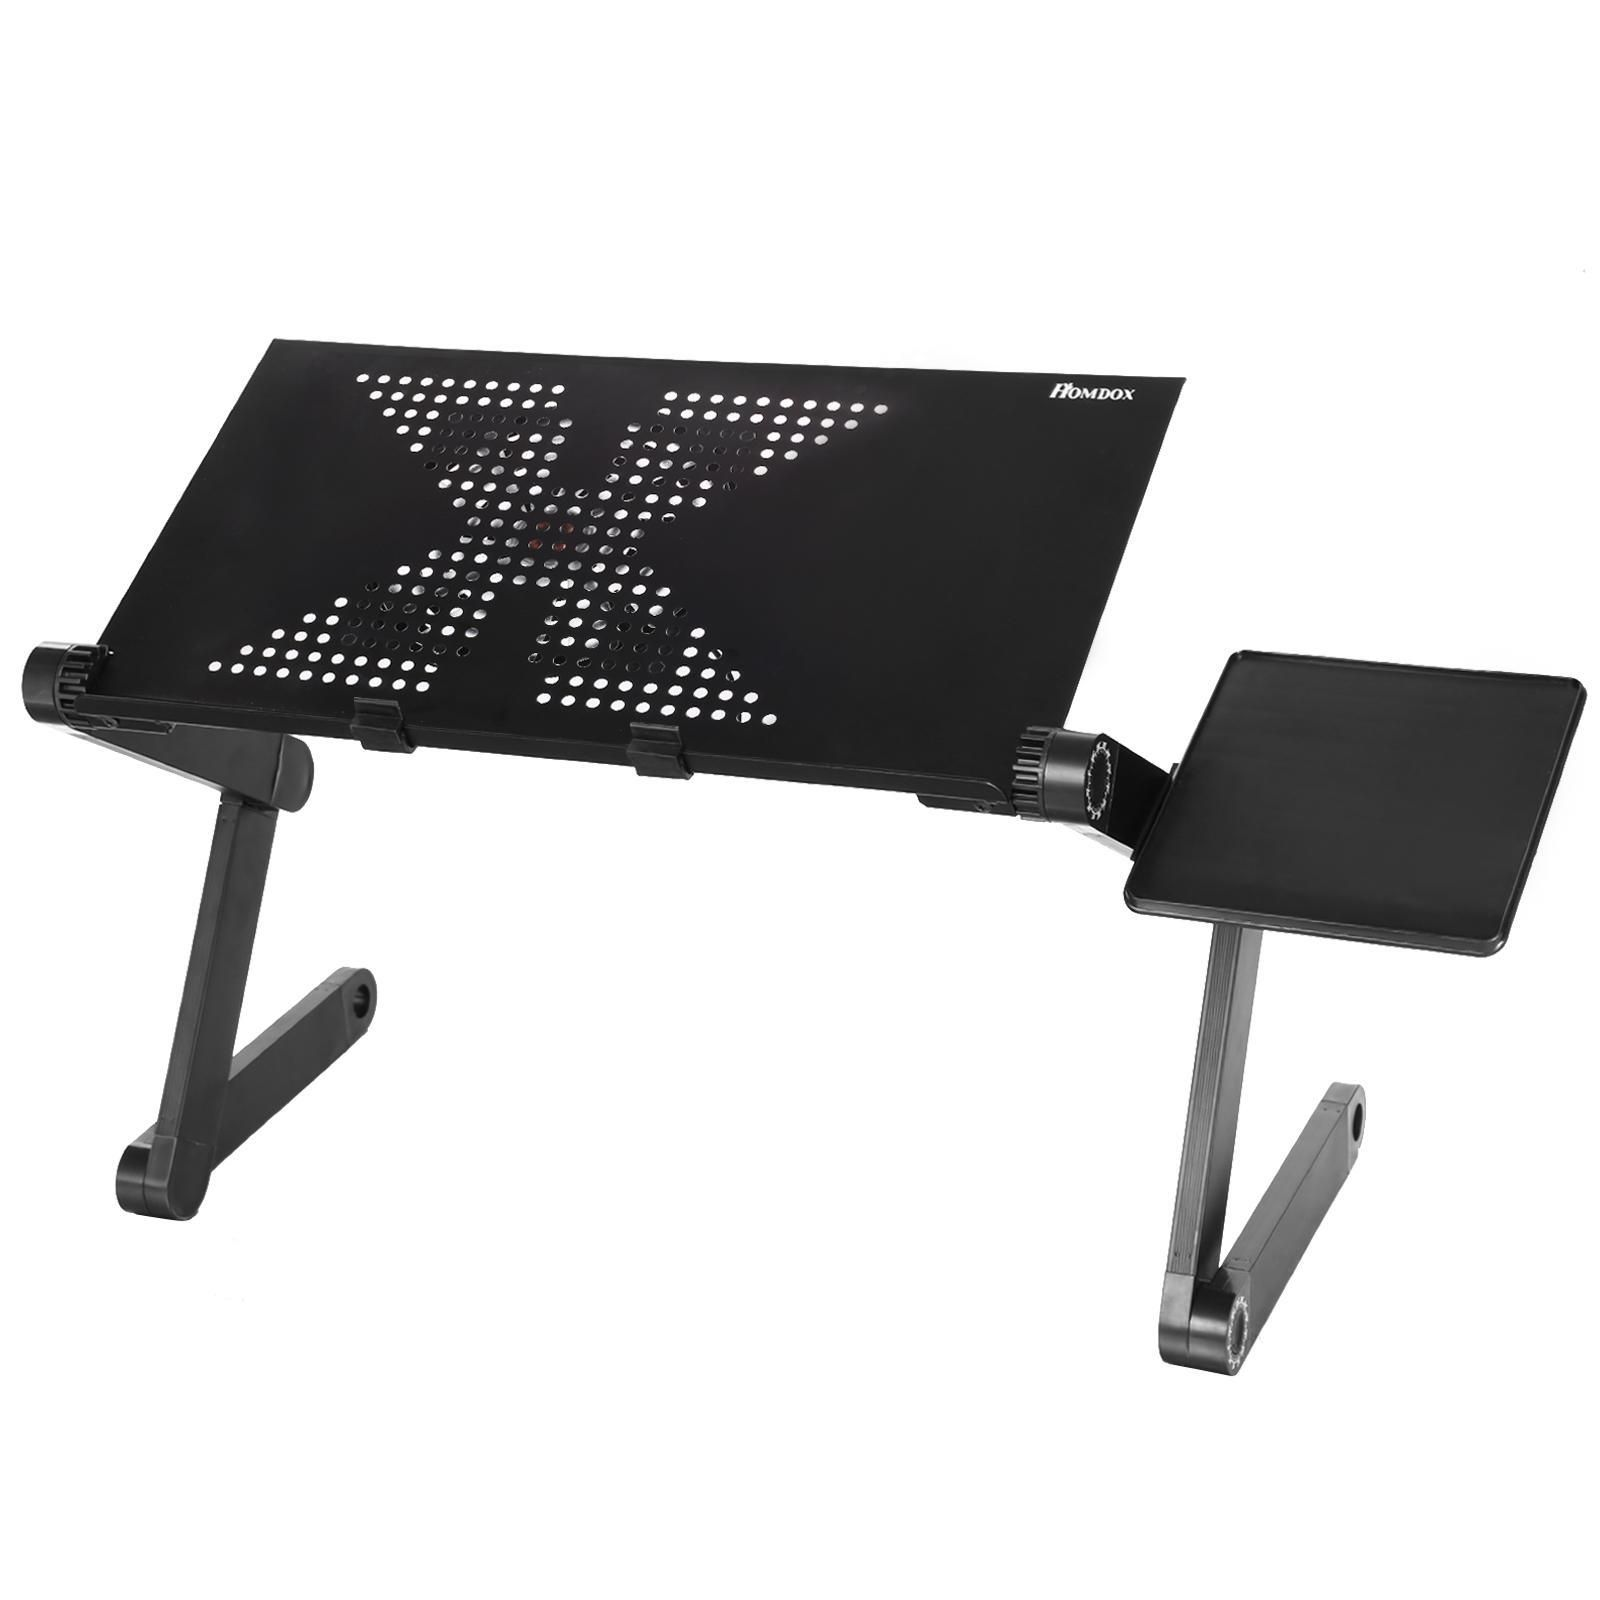 Table Foldable Table Desk Meadow Carpet Laptop Notebook Adjustable Black Computer Stand Bed Sofa 360 Degree